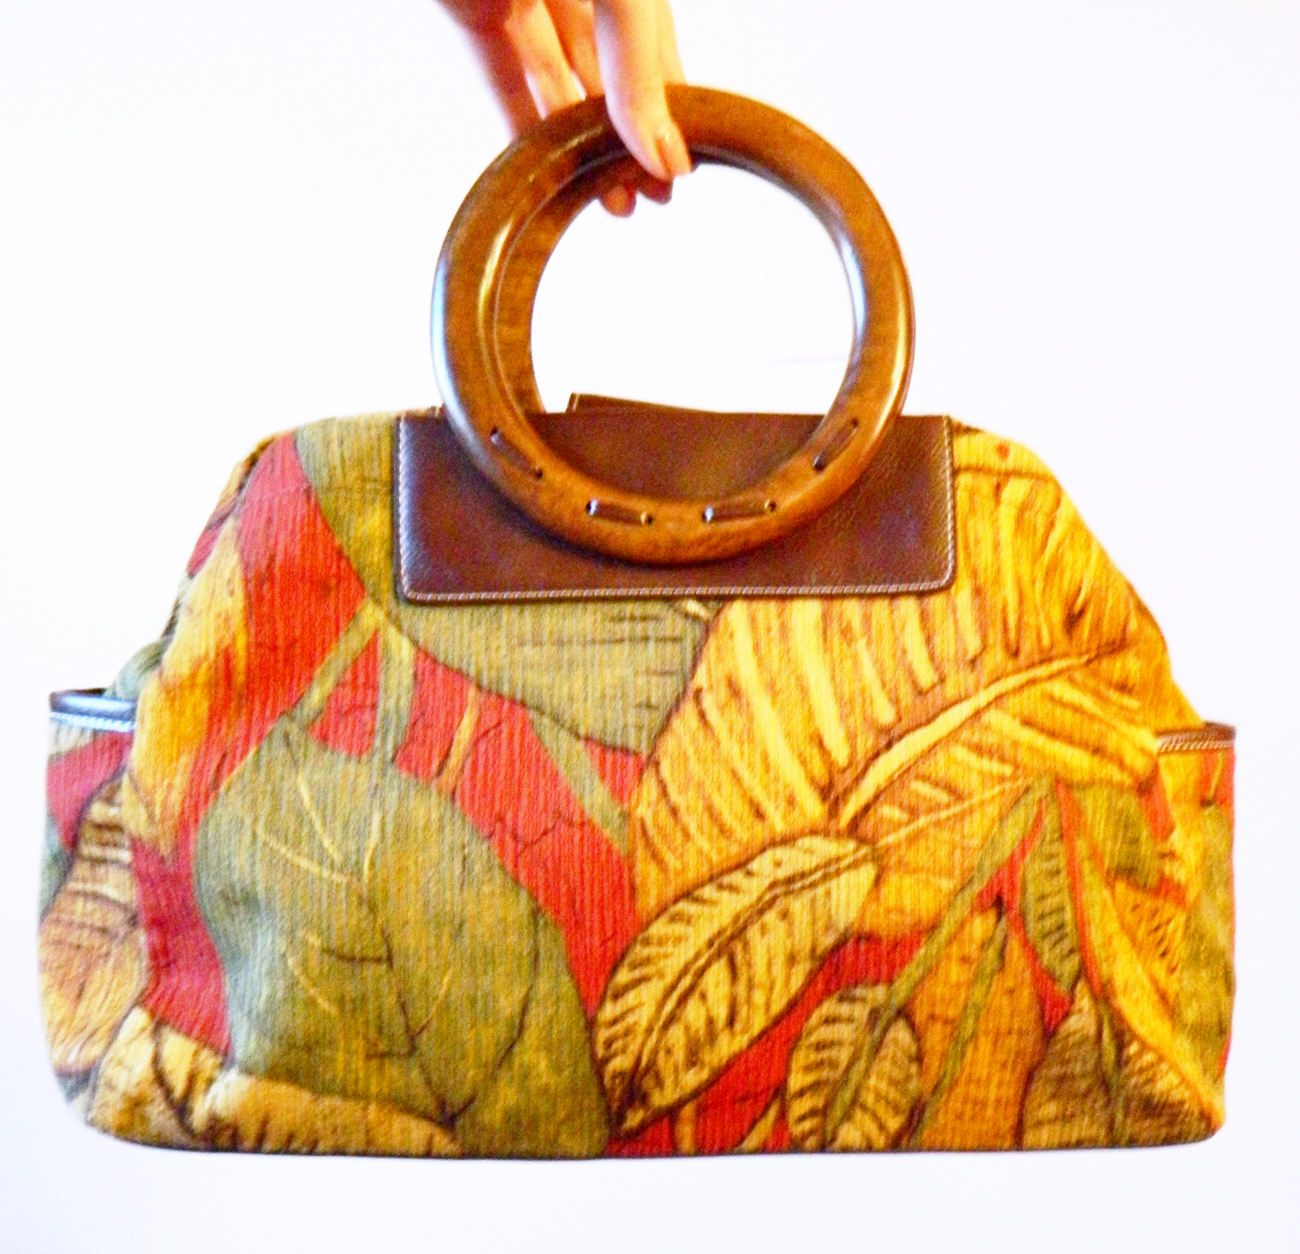 Vintage Rainforest Tropical Purse / Retro Banana Leaf Bag / 90s Tropical Handbag with Wood Handles by thehappyforest on Etsy